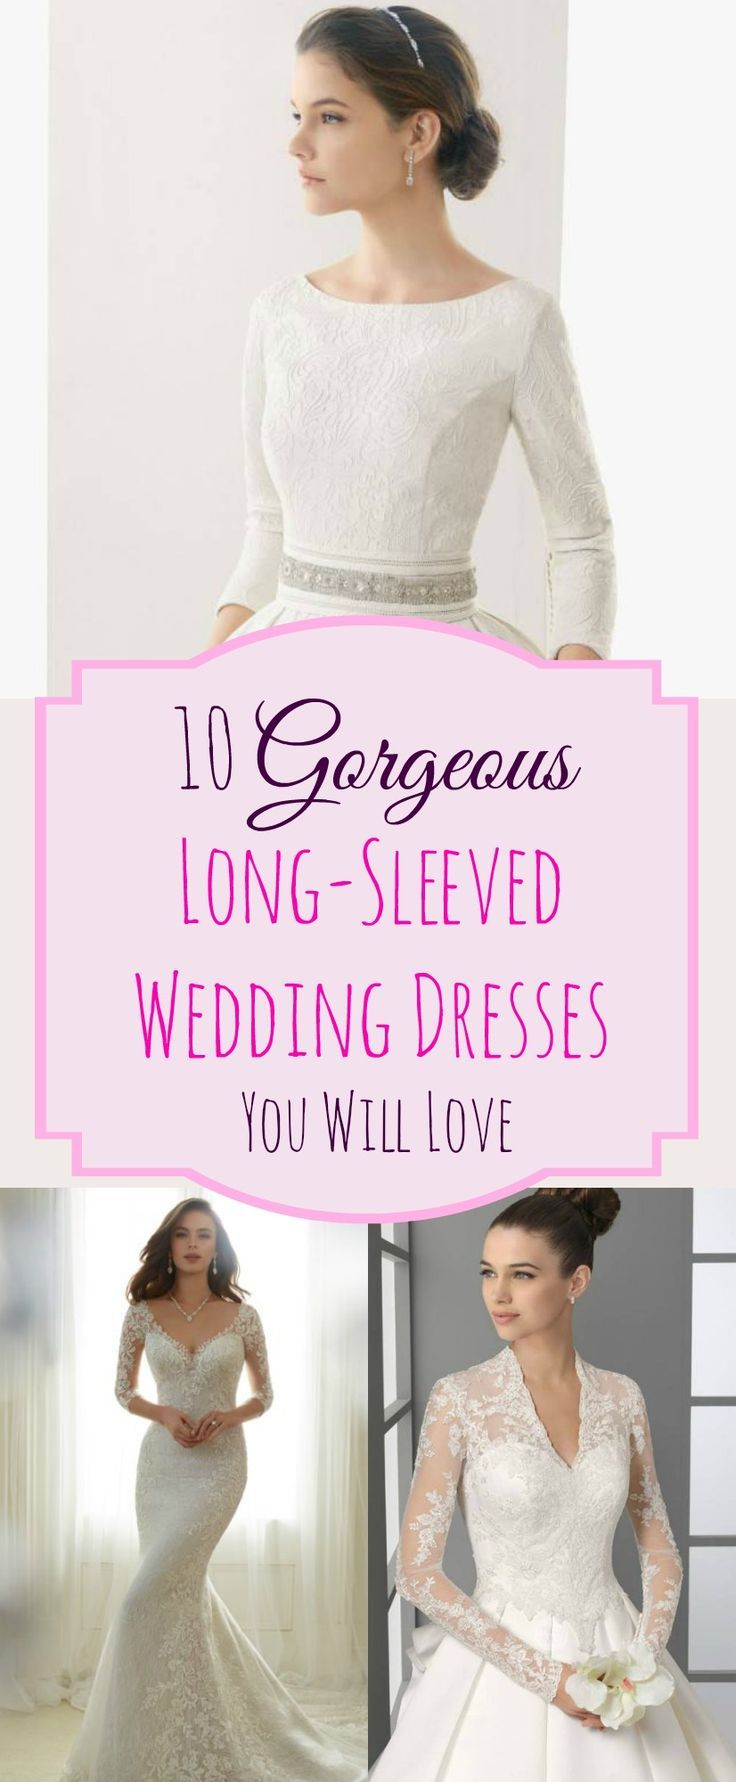 Gorgeous Long-Sleeved Wedding Dresses You Will Love | Pinterest ...